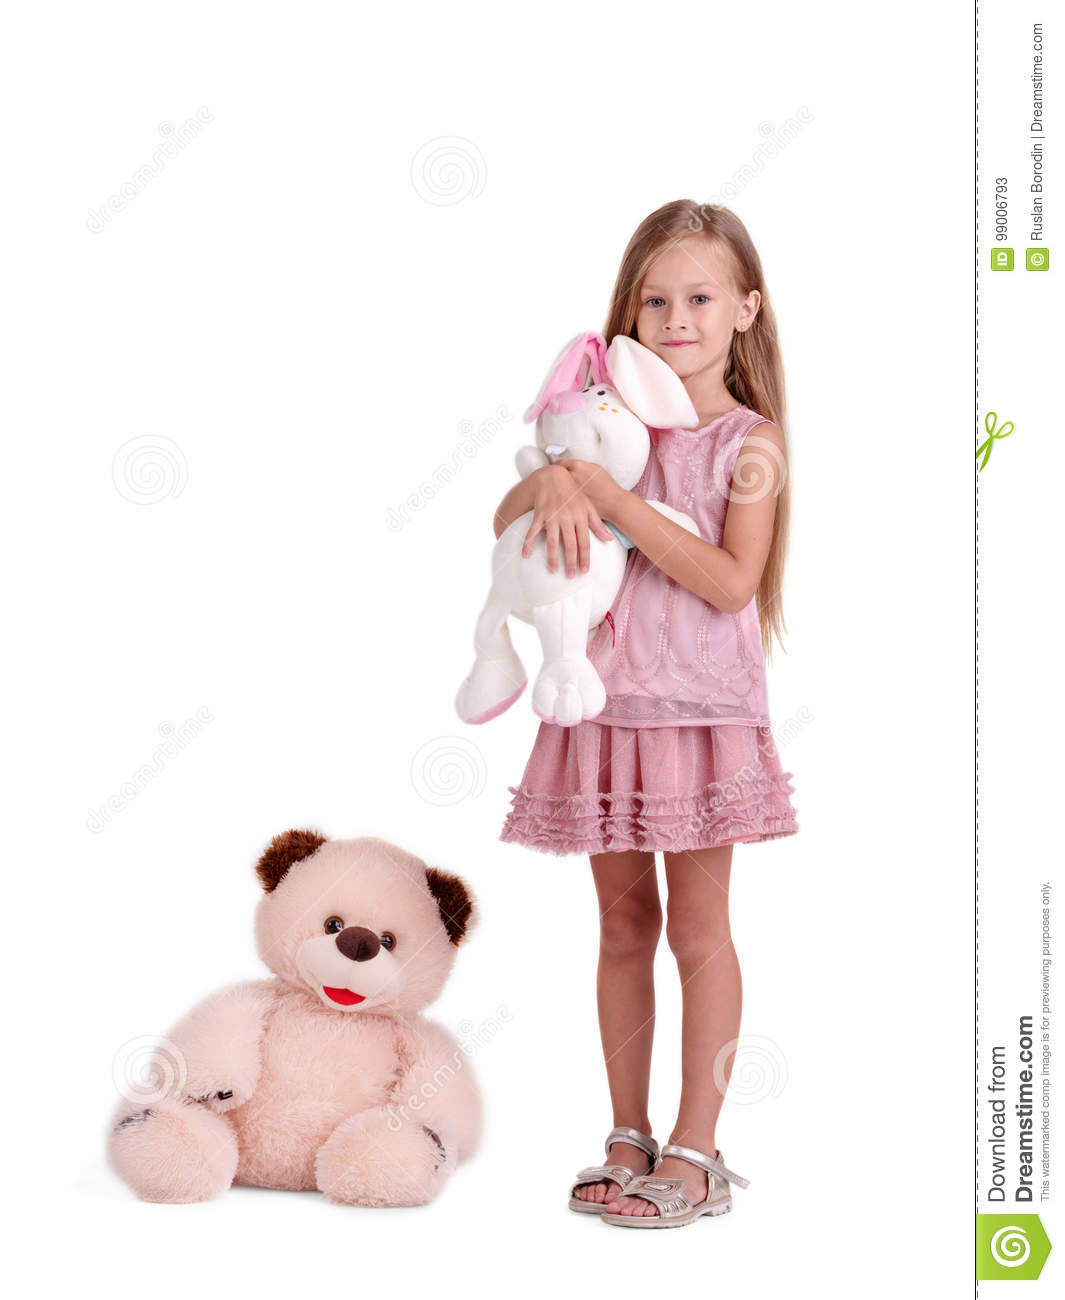 A Girl With A Soft Toy, Isolated On A White Background. A ...Little Girl With Teddy Bear Black And White